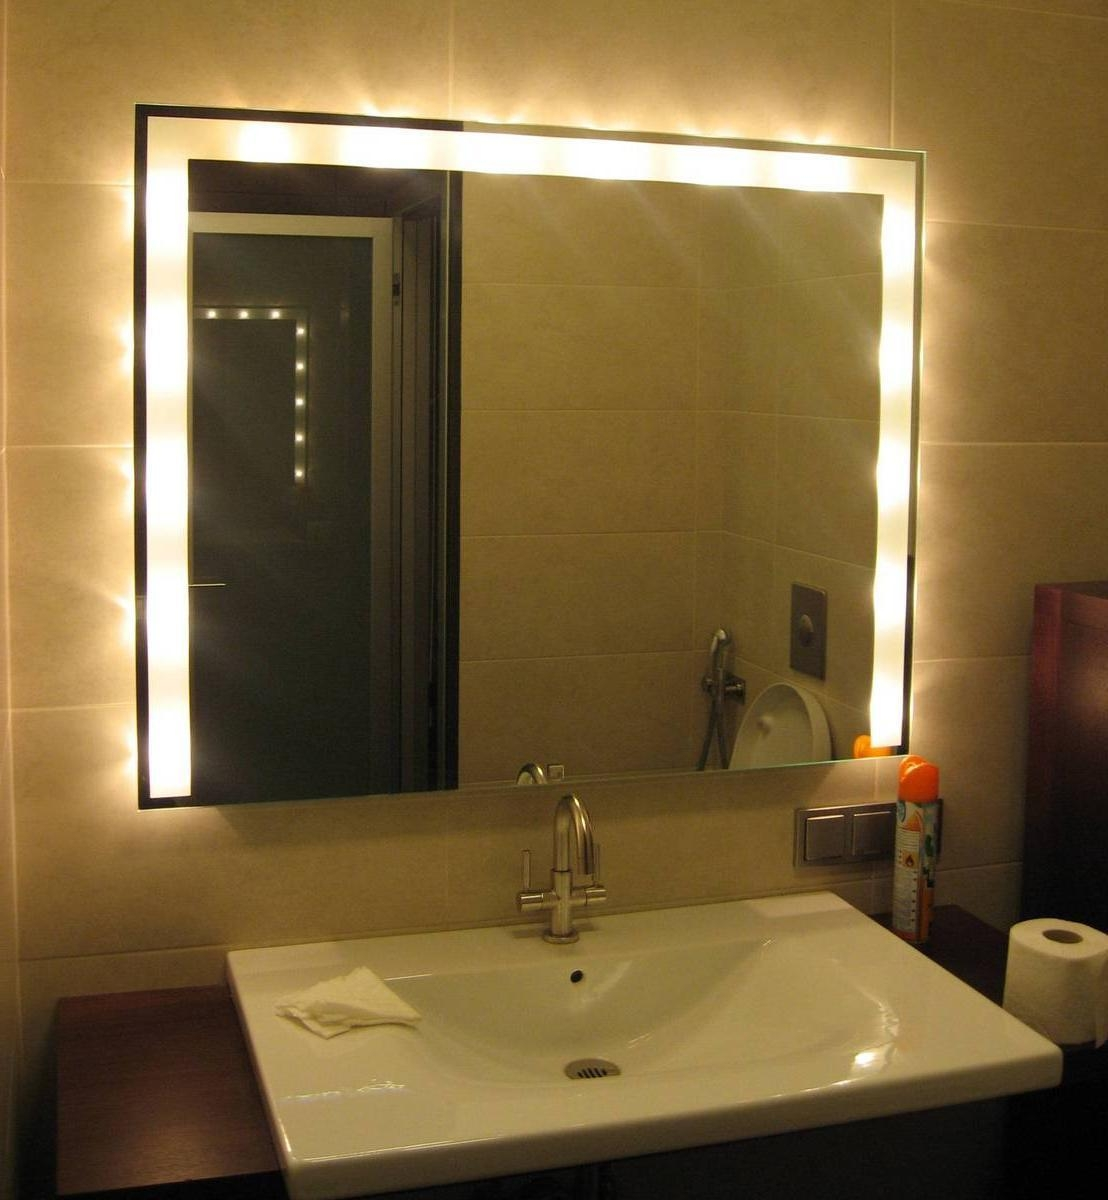 Surprising Led Bathroom Vanity Light Vanity Lights Walmart Mirror With Regard To Lights For Bathroom Mirrors (Image 18 of 20)